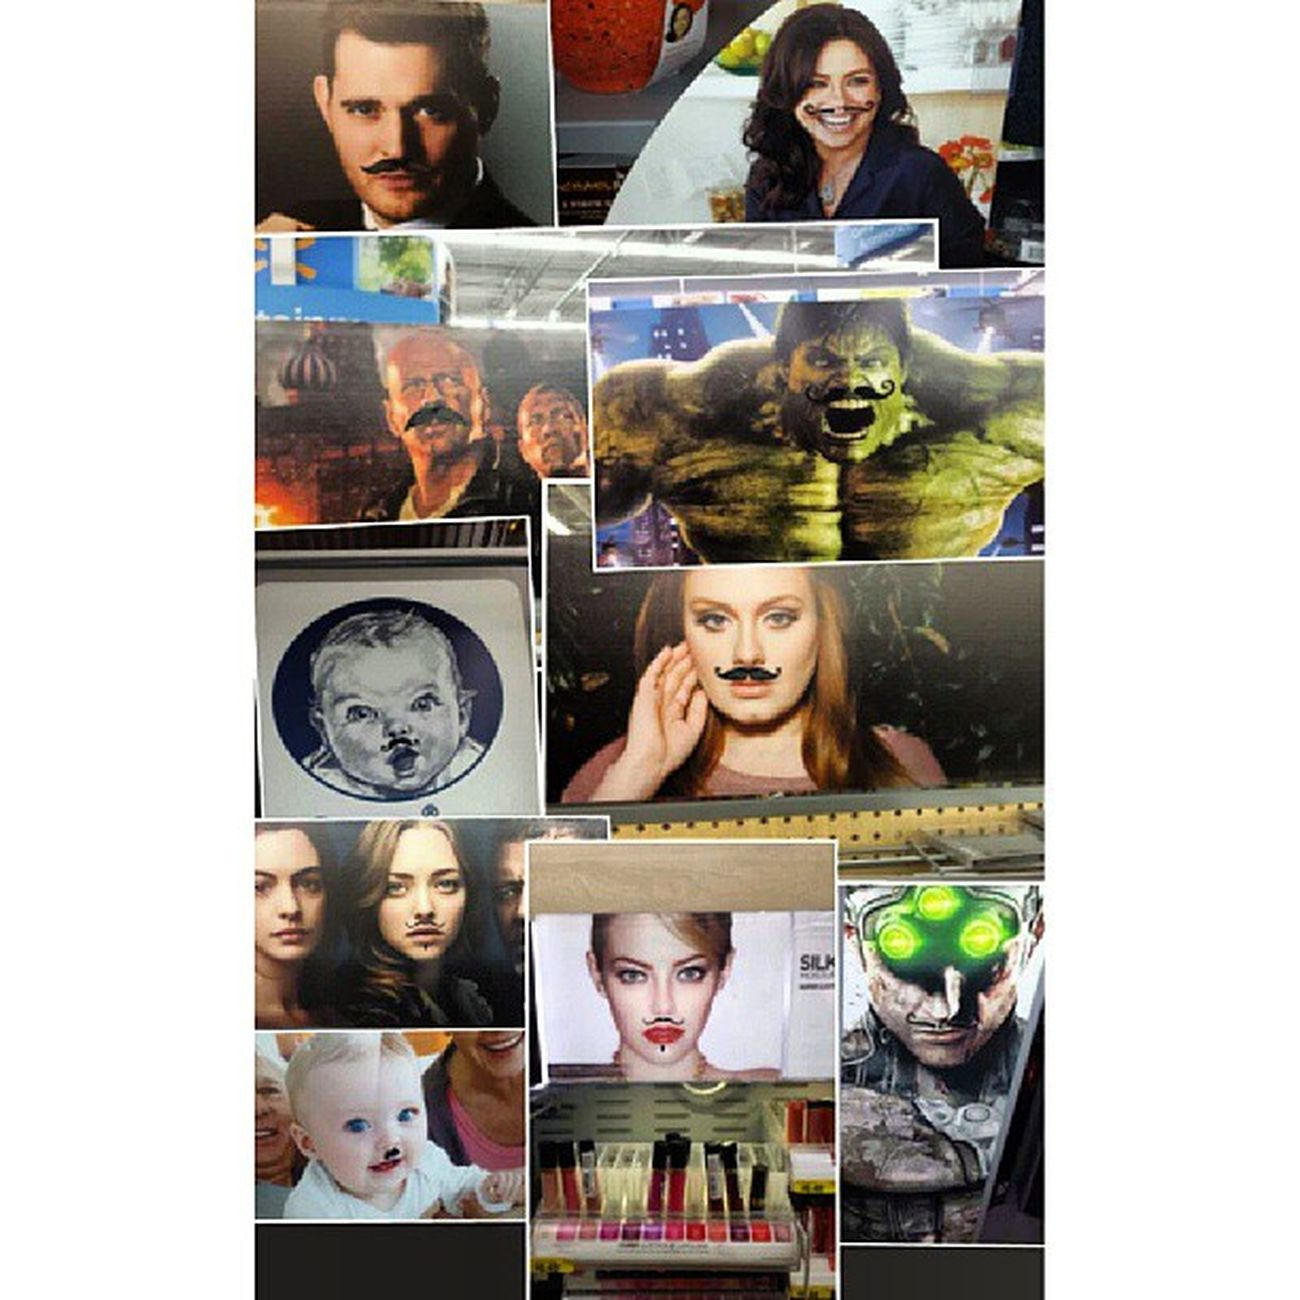 Apparently.... someone.... thought it to be hilarious to apply mustache stickers on people, randomly throughout the store.... lol. Whoever it is, HE'S Freakin nuts. Gerberbaby Michaelbuble Theincrediblehulk Thehulk lesmiserables brucewillis annehathaway splintercell Adele rachelray emmastone babyWithaHitlerStache instafunny instagood instalol walmart